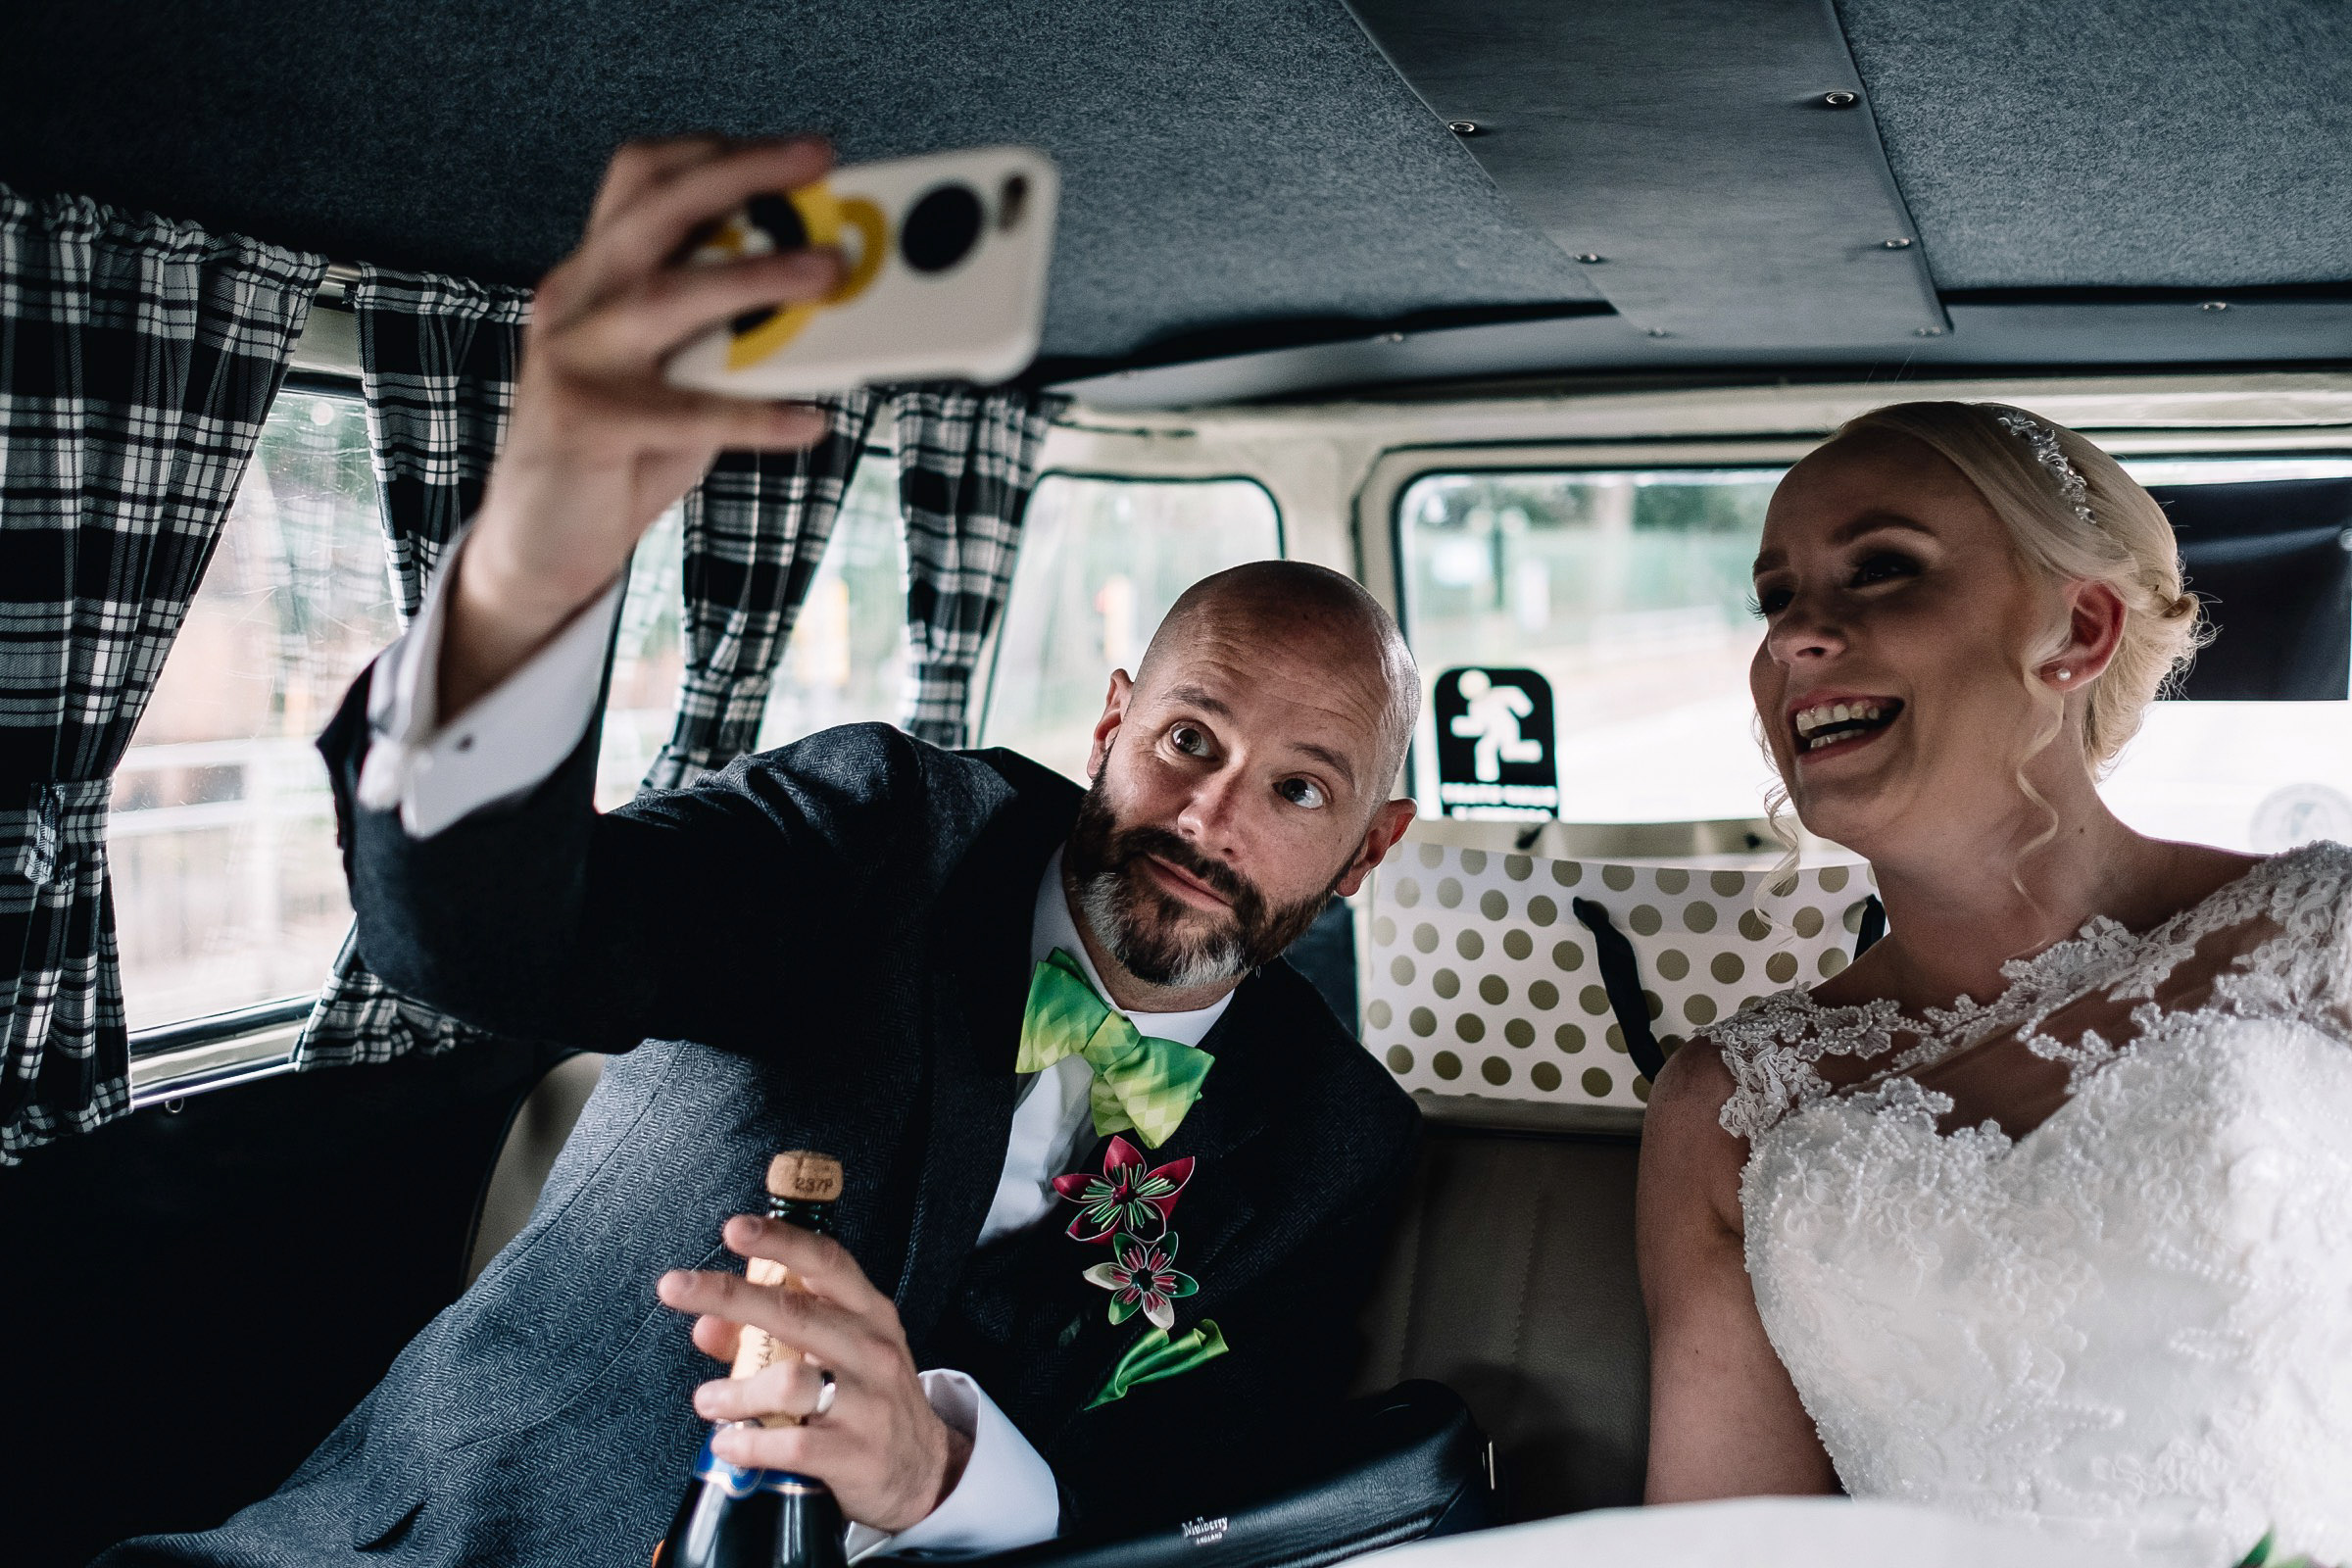 Bride and groom taking selfie in camper van